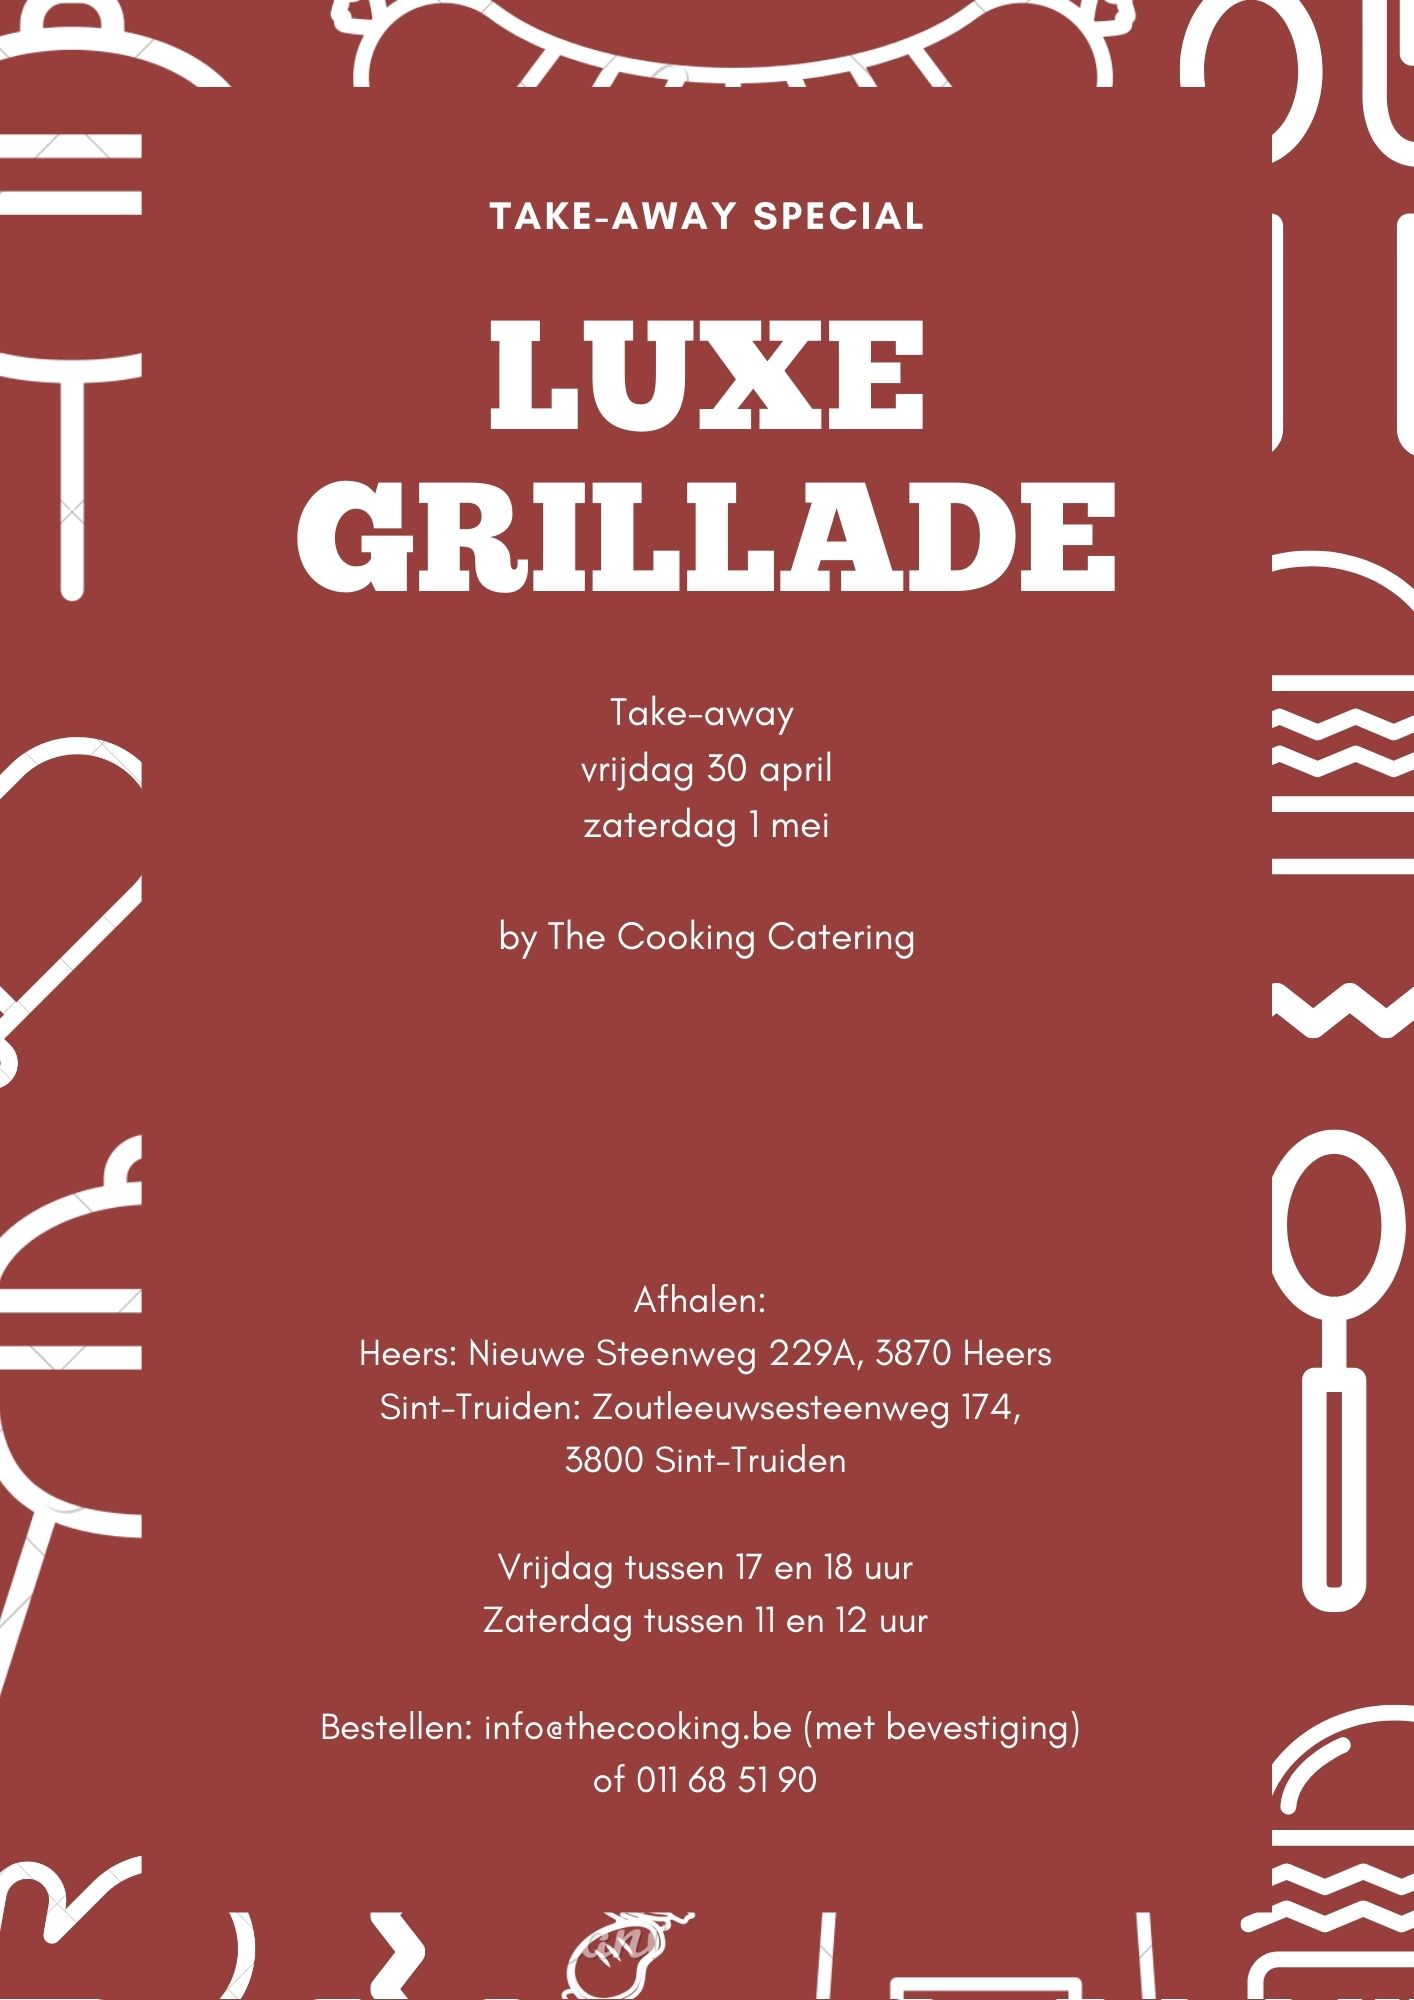 luxe grillade